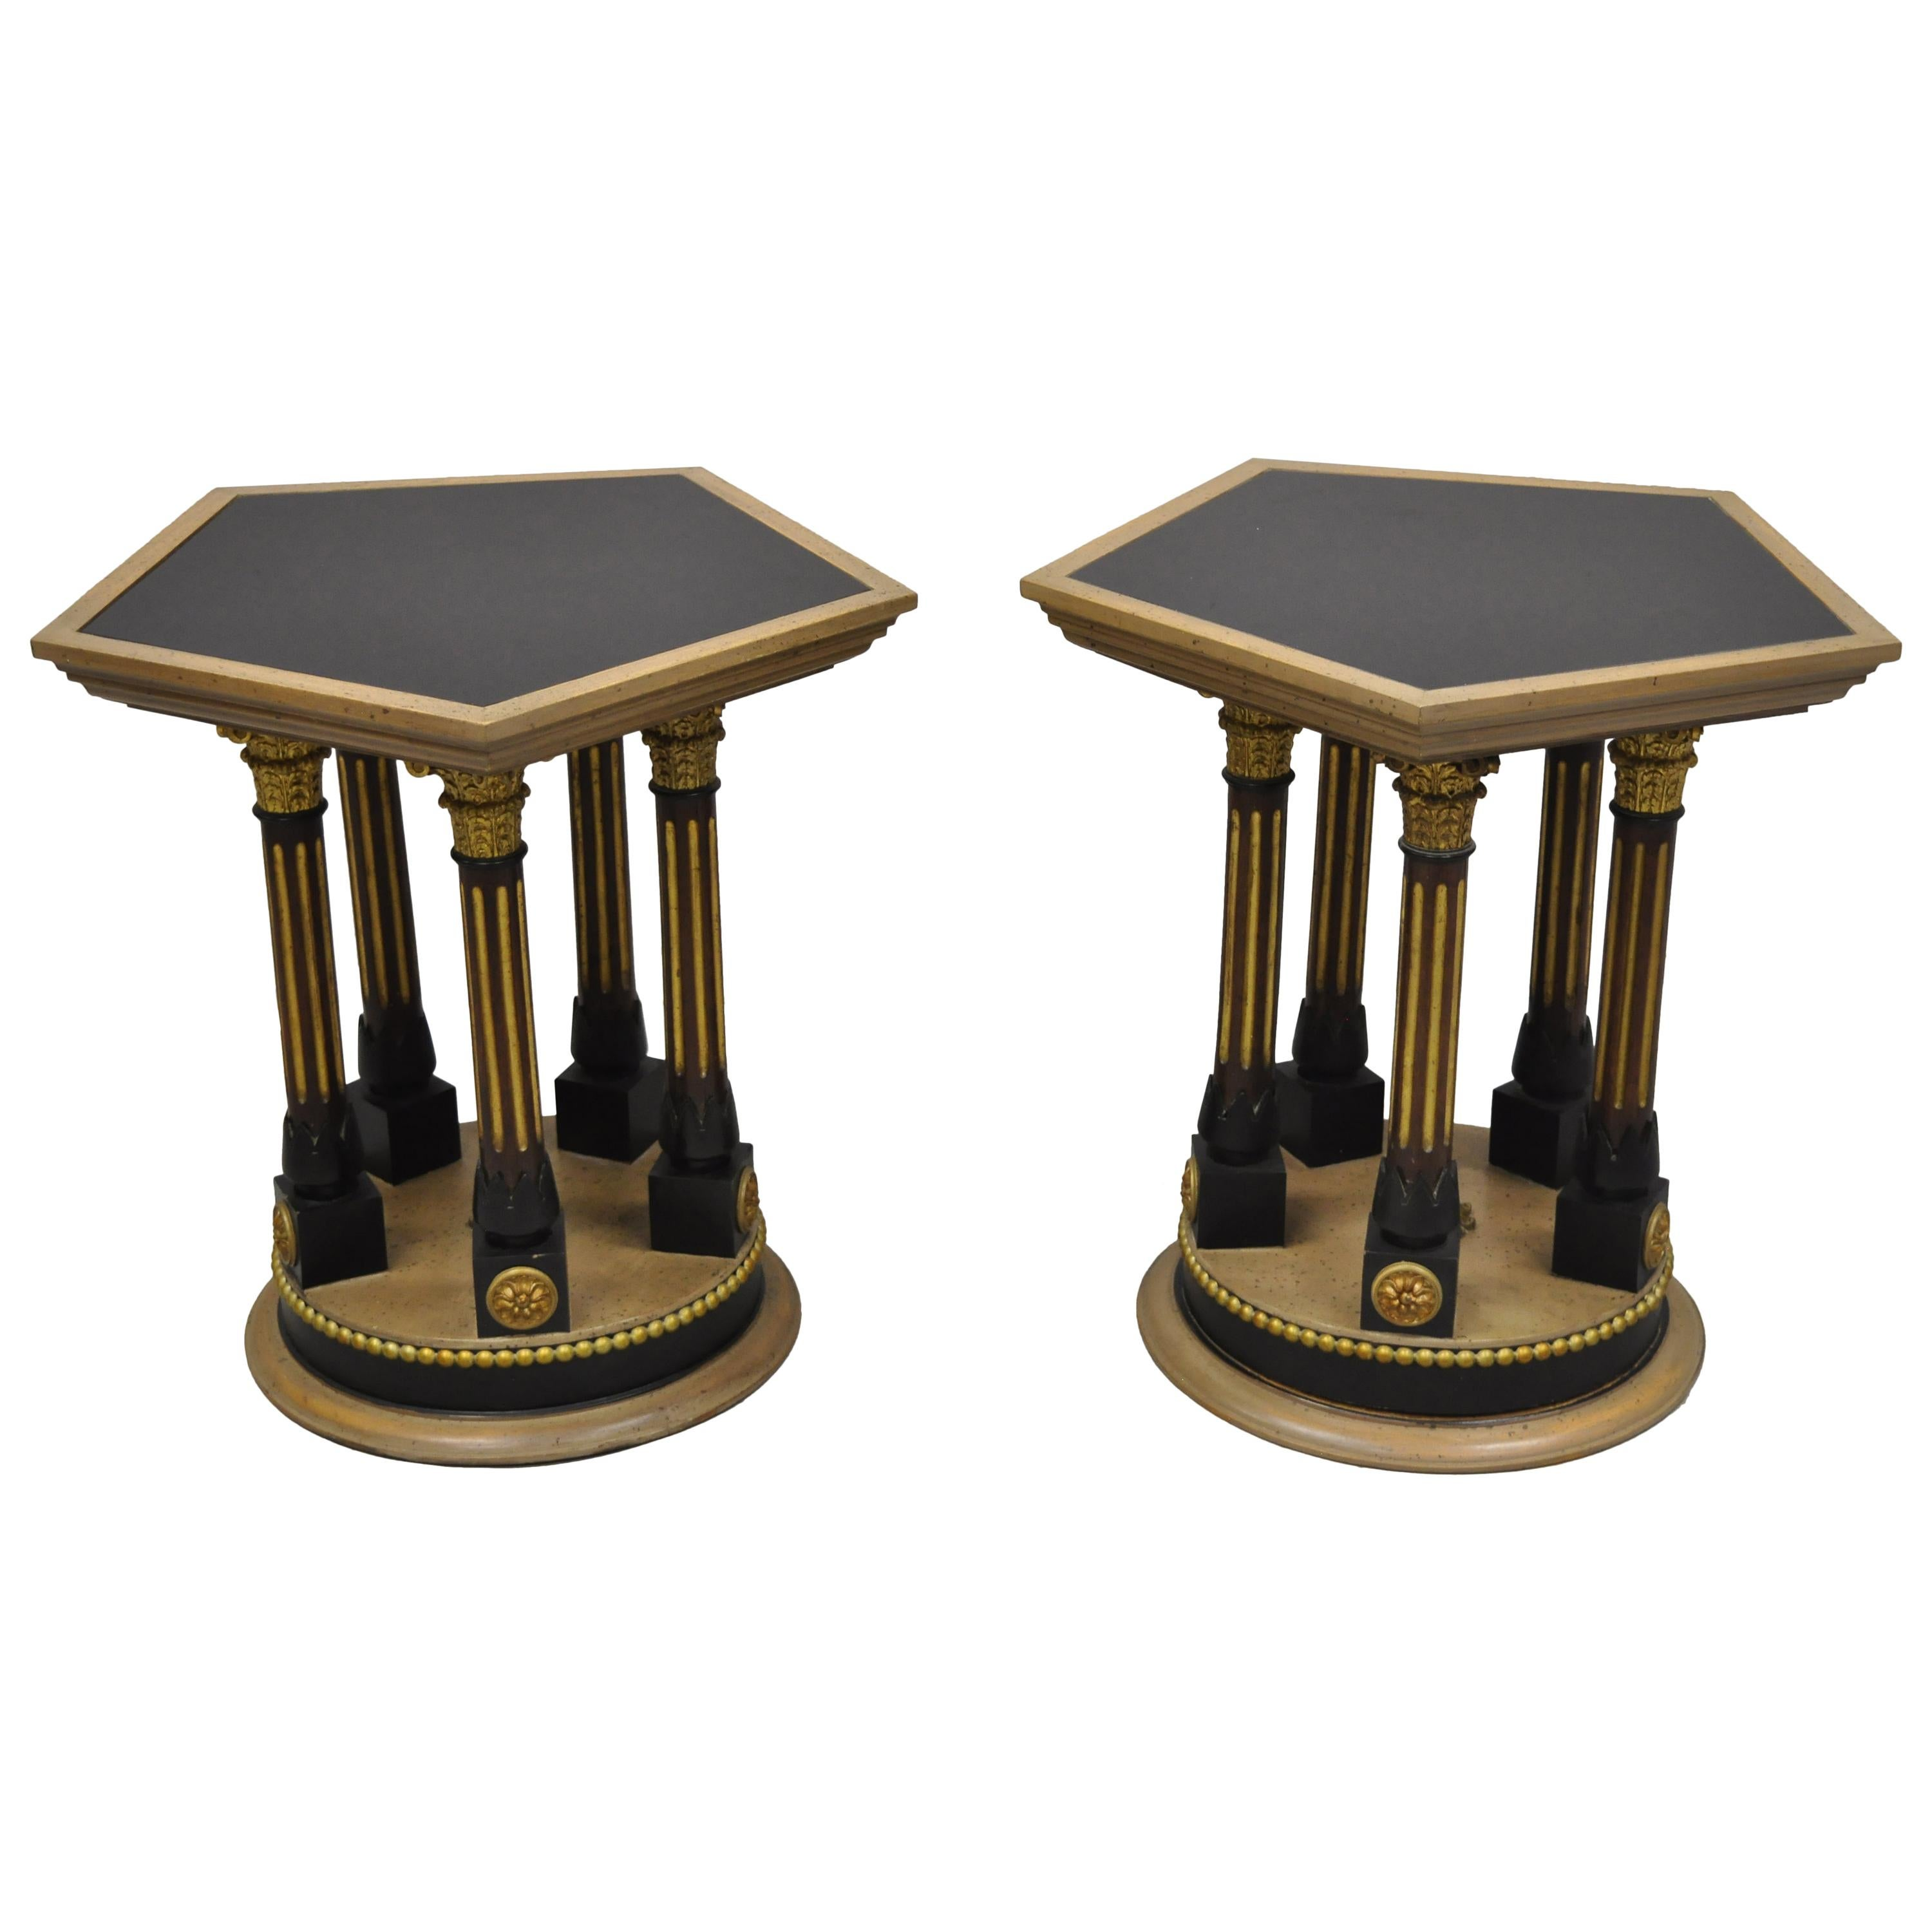 Pair of French Empire Corinthian Column Glass Top Hexagon Small Side Tables